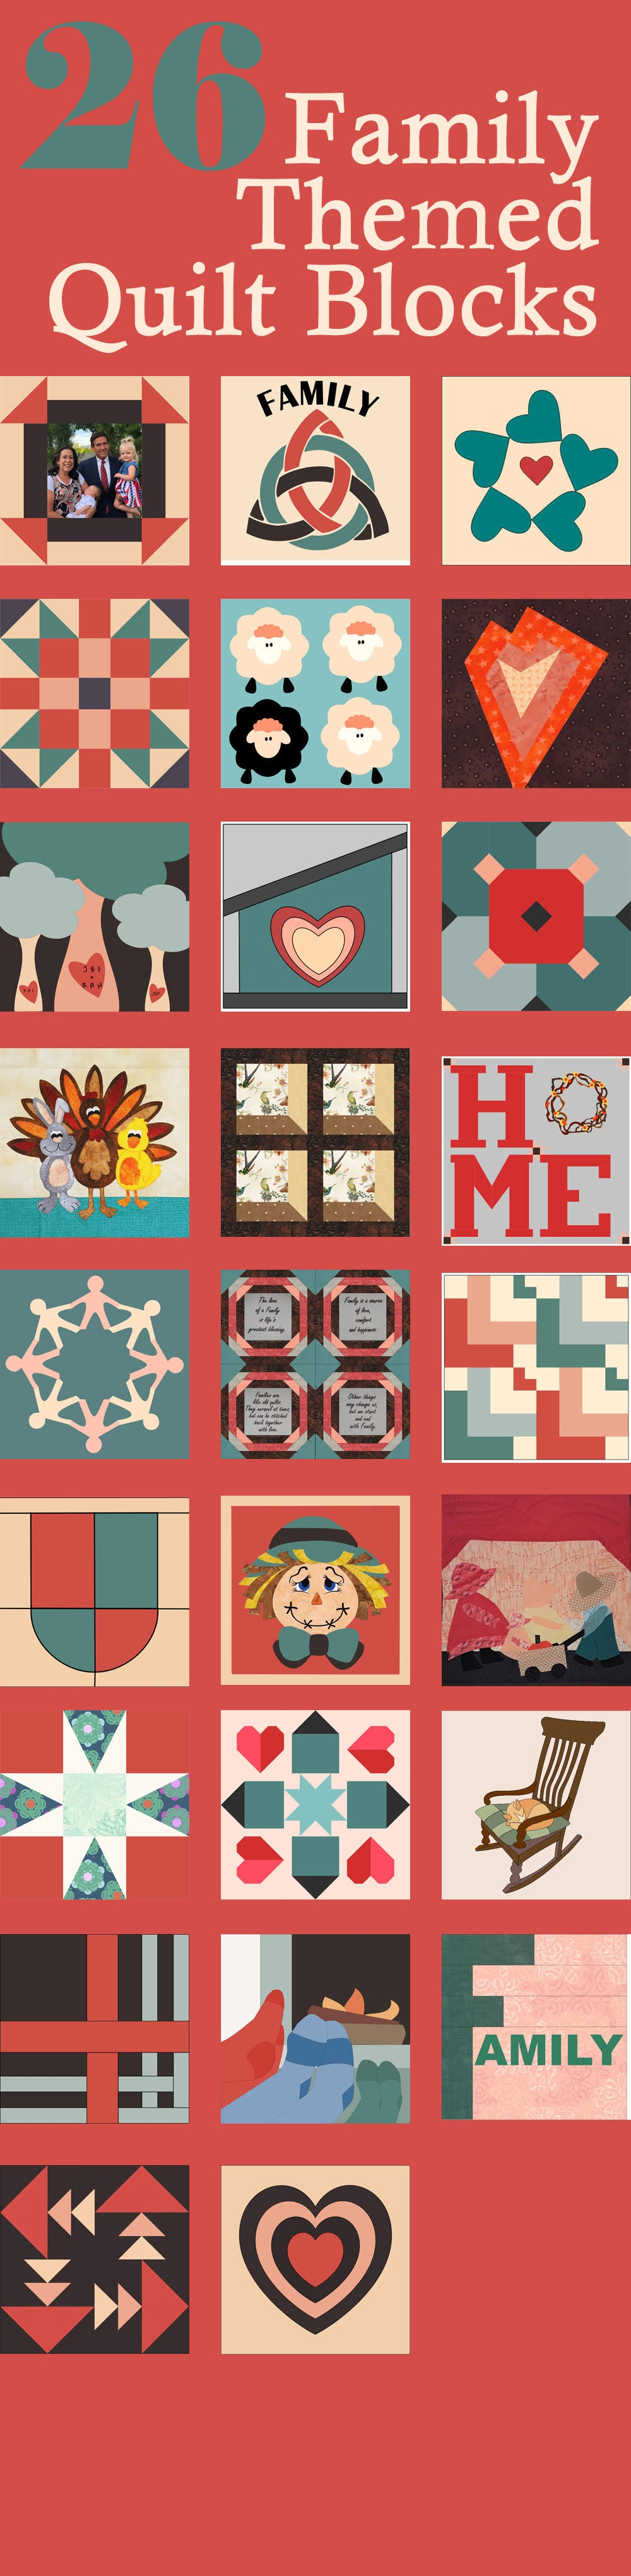 26 Free quilt block patterns